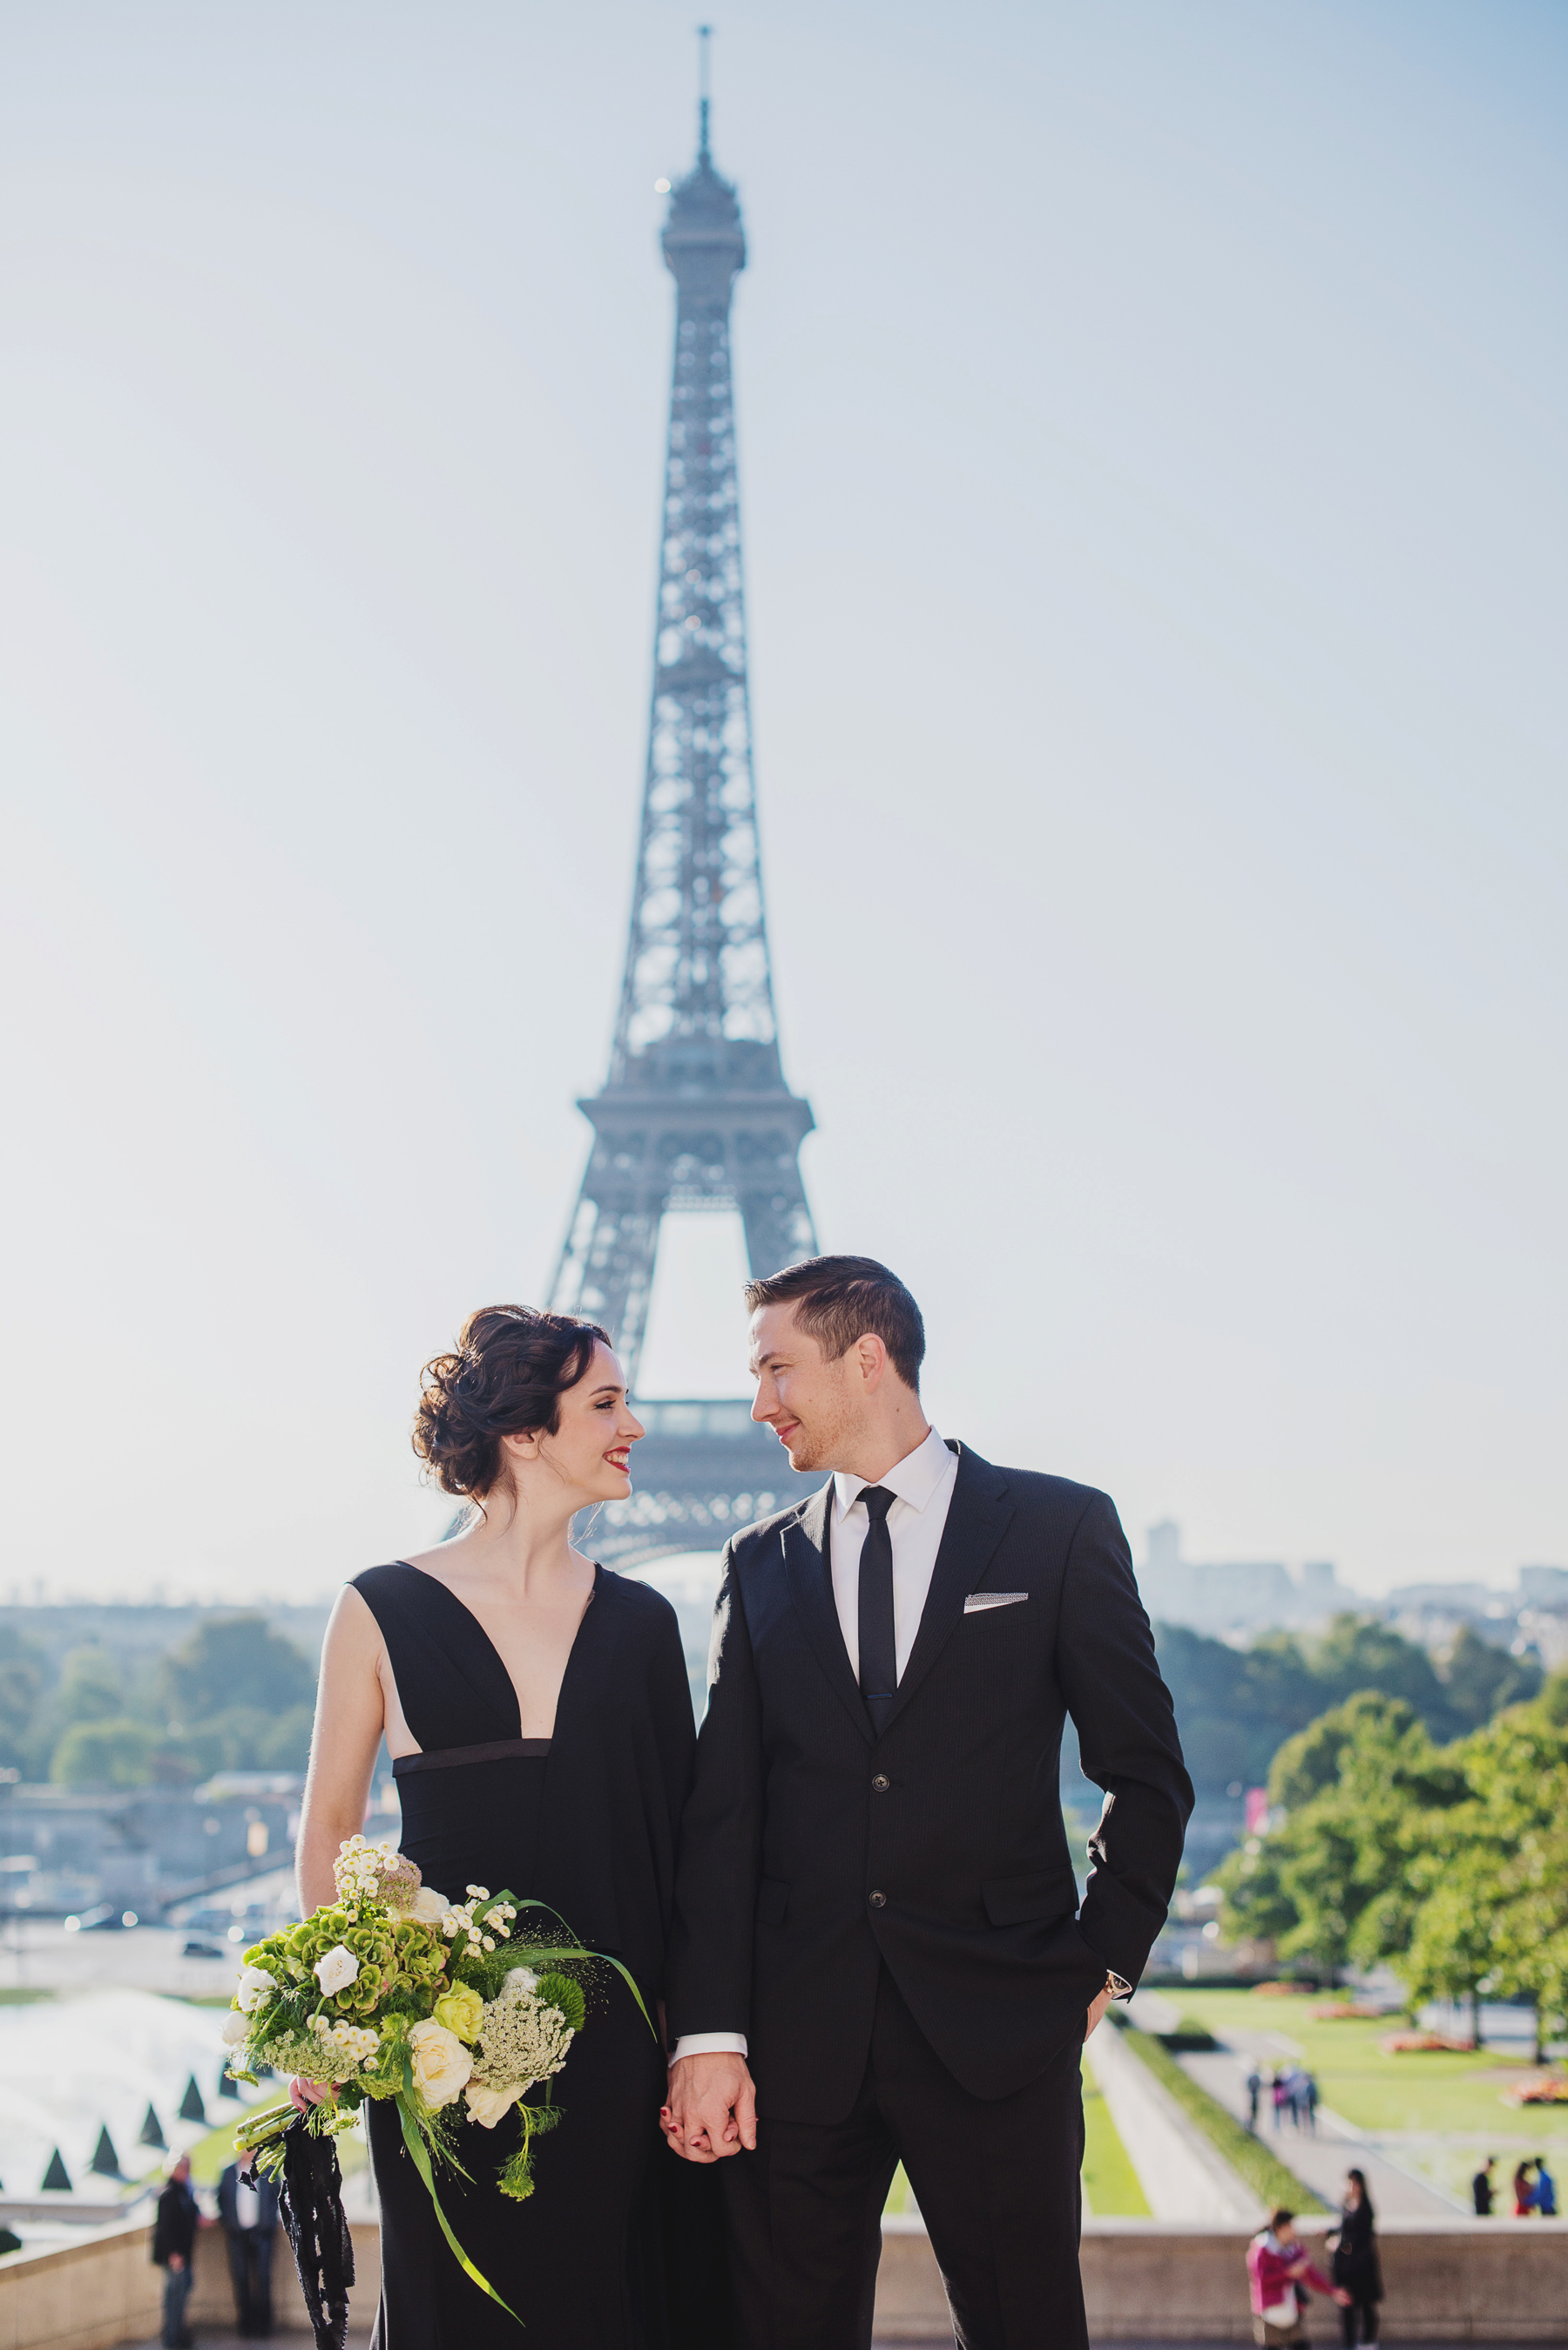 elopement outfit inspiration couple in black with eiffel tower in background